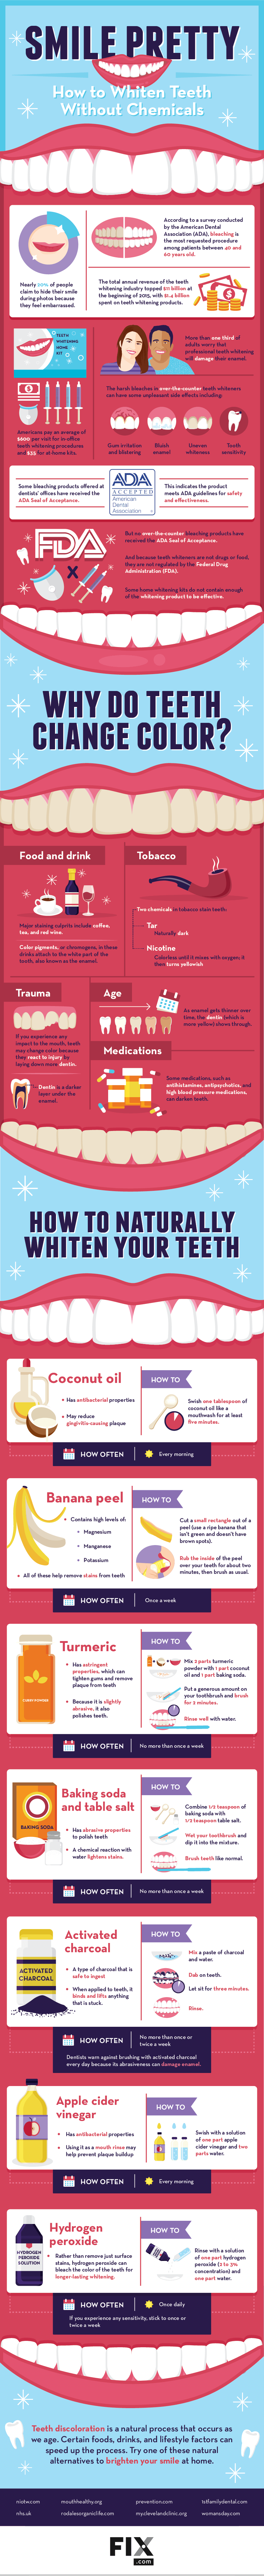 What are the effects of vinegar on teeth?